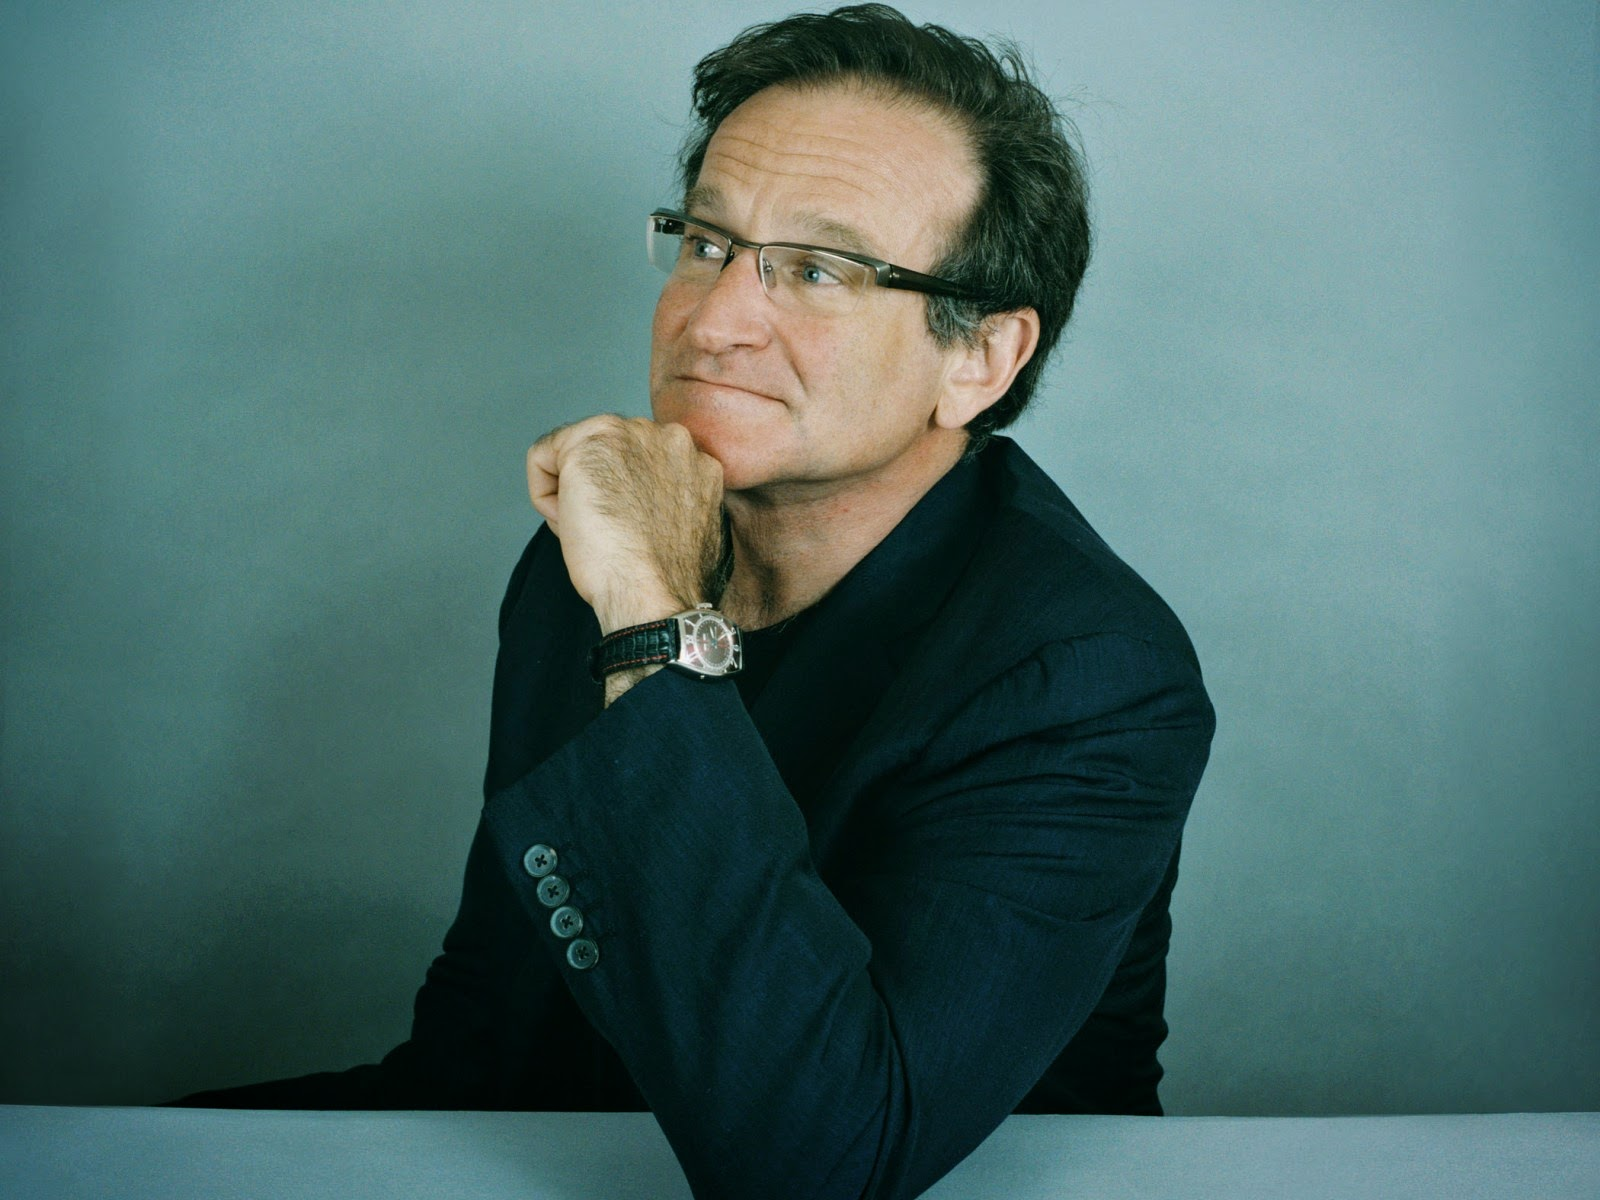 Muere Robin Williams. MÁS CINE. Making Of. Noticias